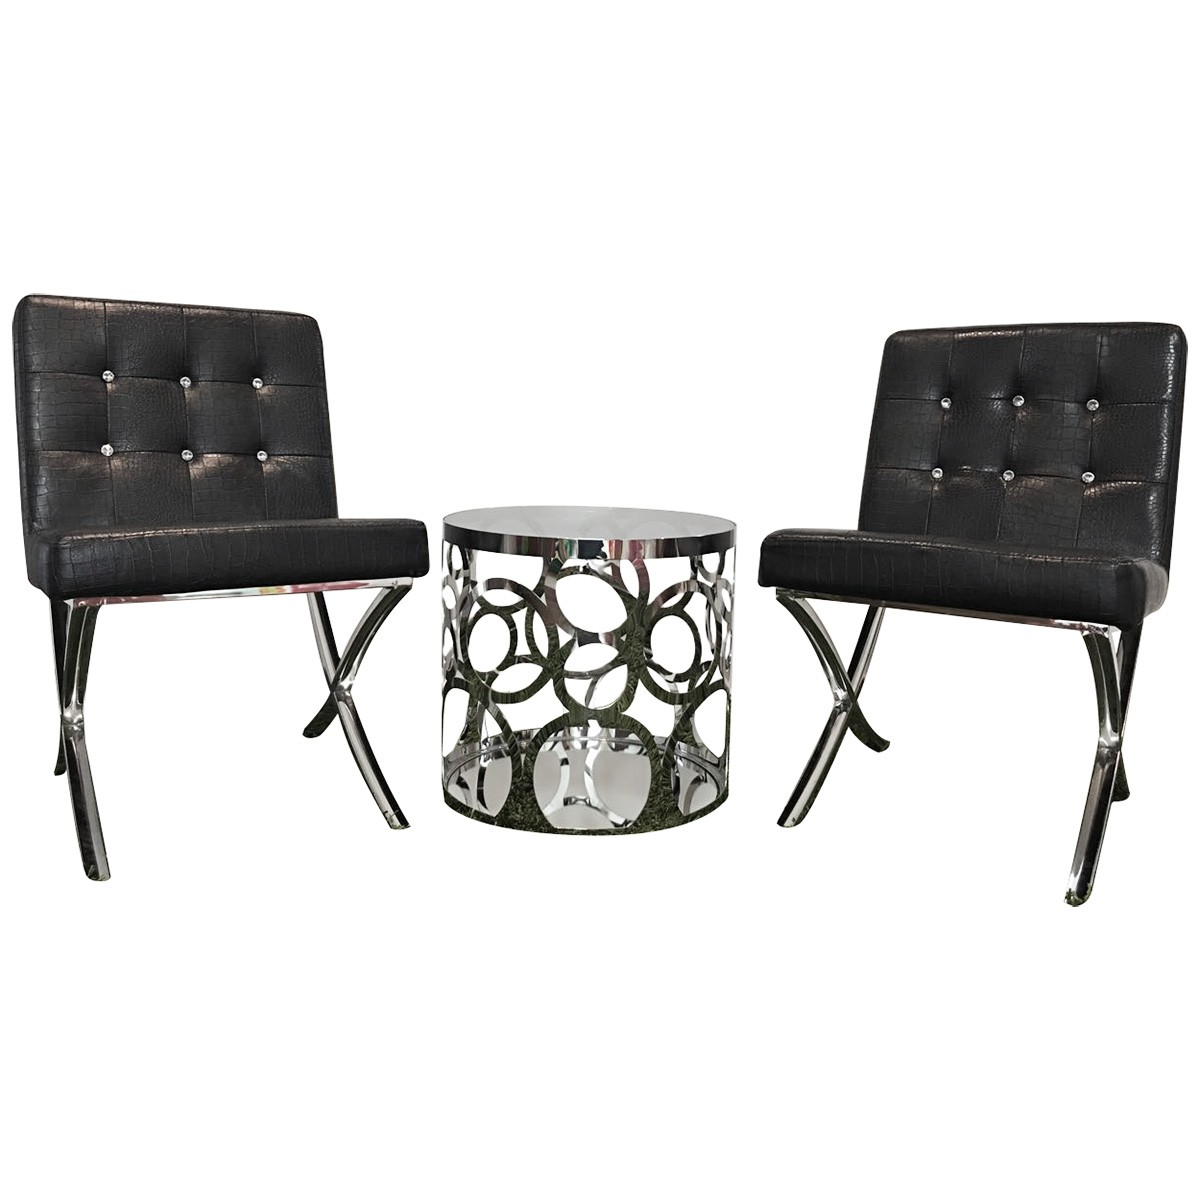 Alice & Celestine 3 Piece Lounge Set, Black